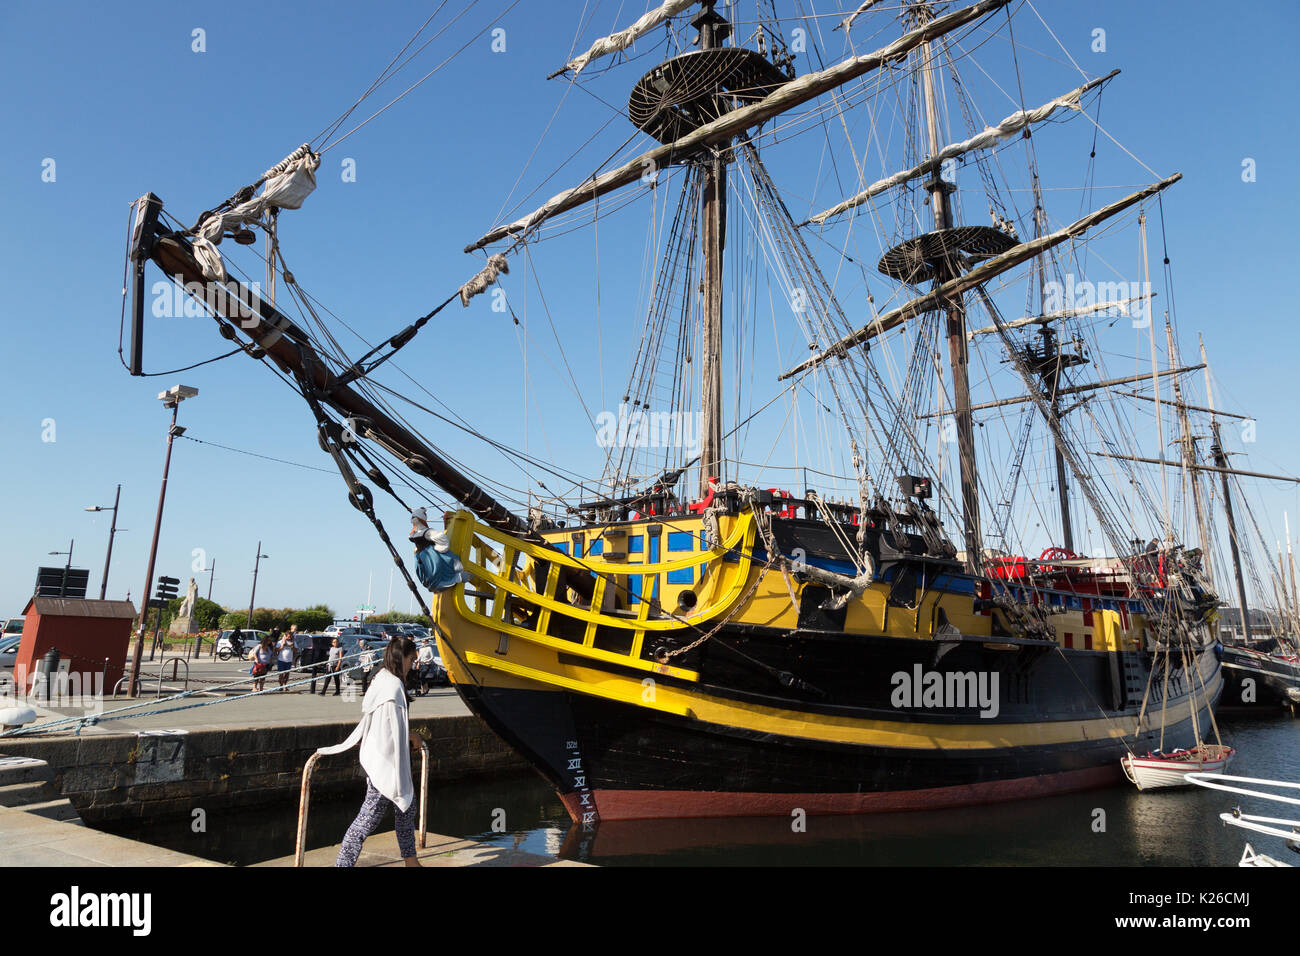 The ' Etoile du Roy ' formally known as ' Grand Turk ', a 3 masted frigate  replica built in 1996, moored in St Malo harbour, St Malo, Brittany France - Stock Image